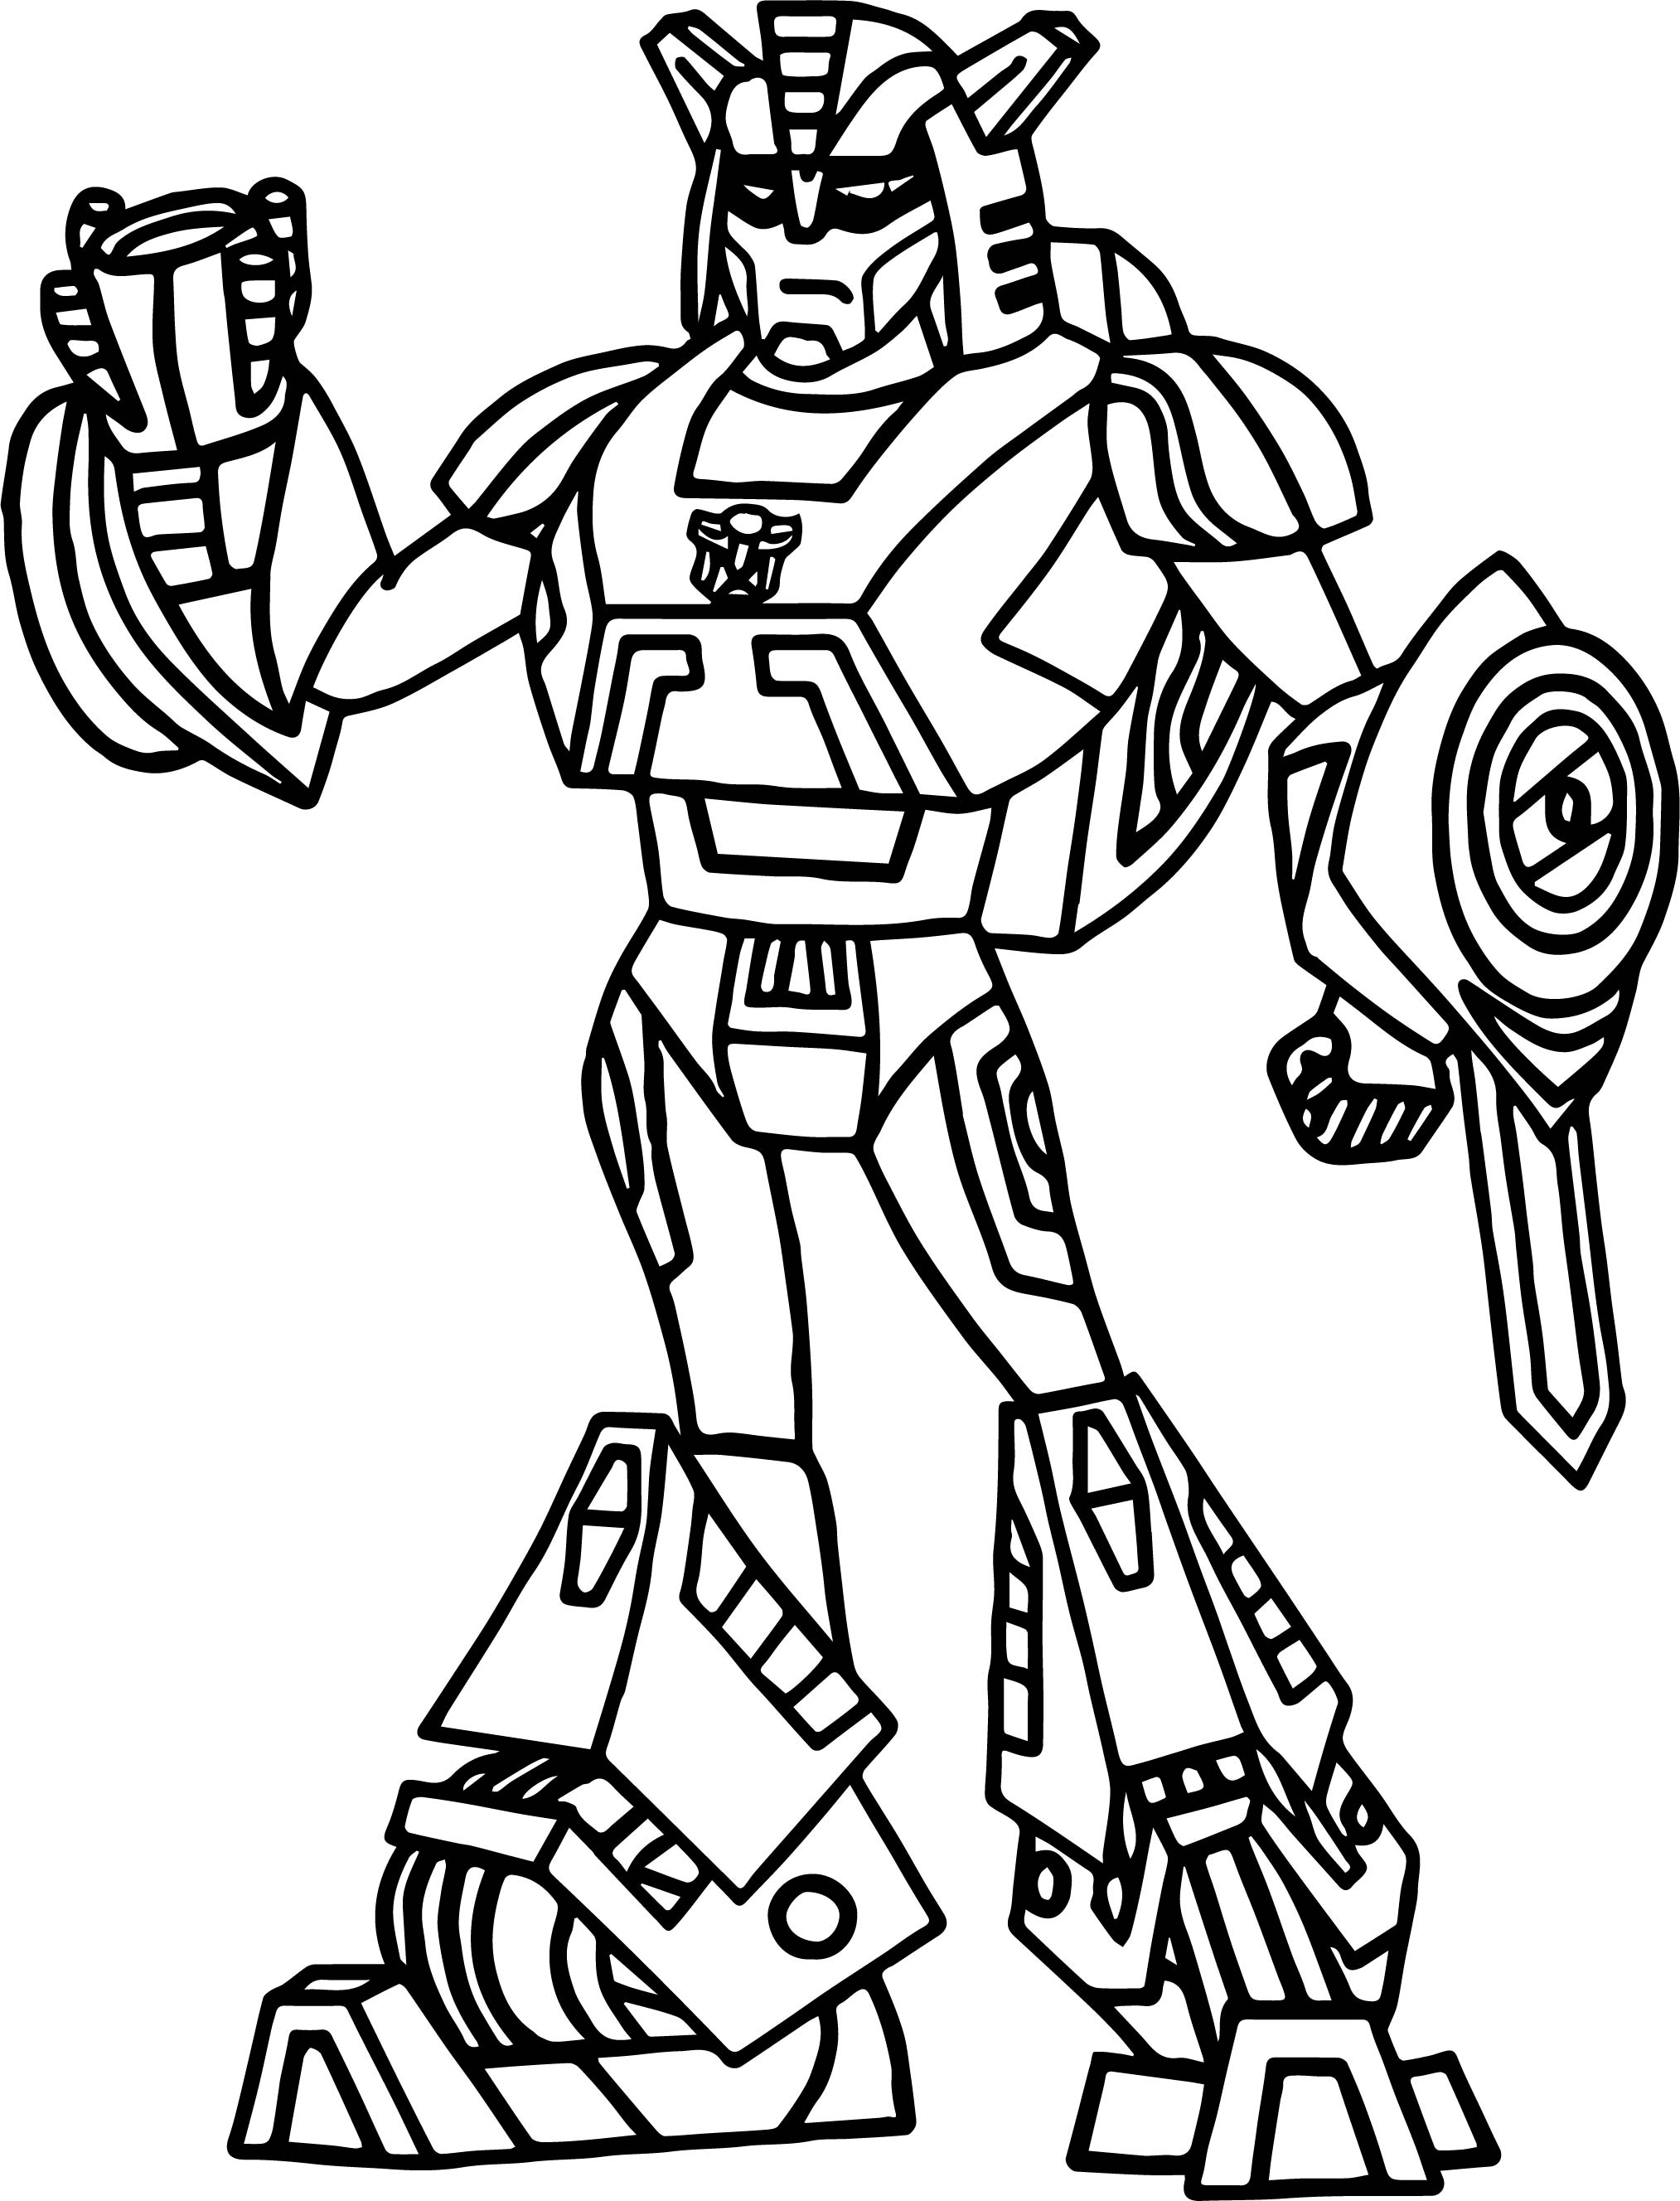 Transformers Coloring Pages | Free download best Transformers ...